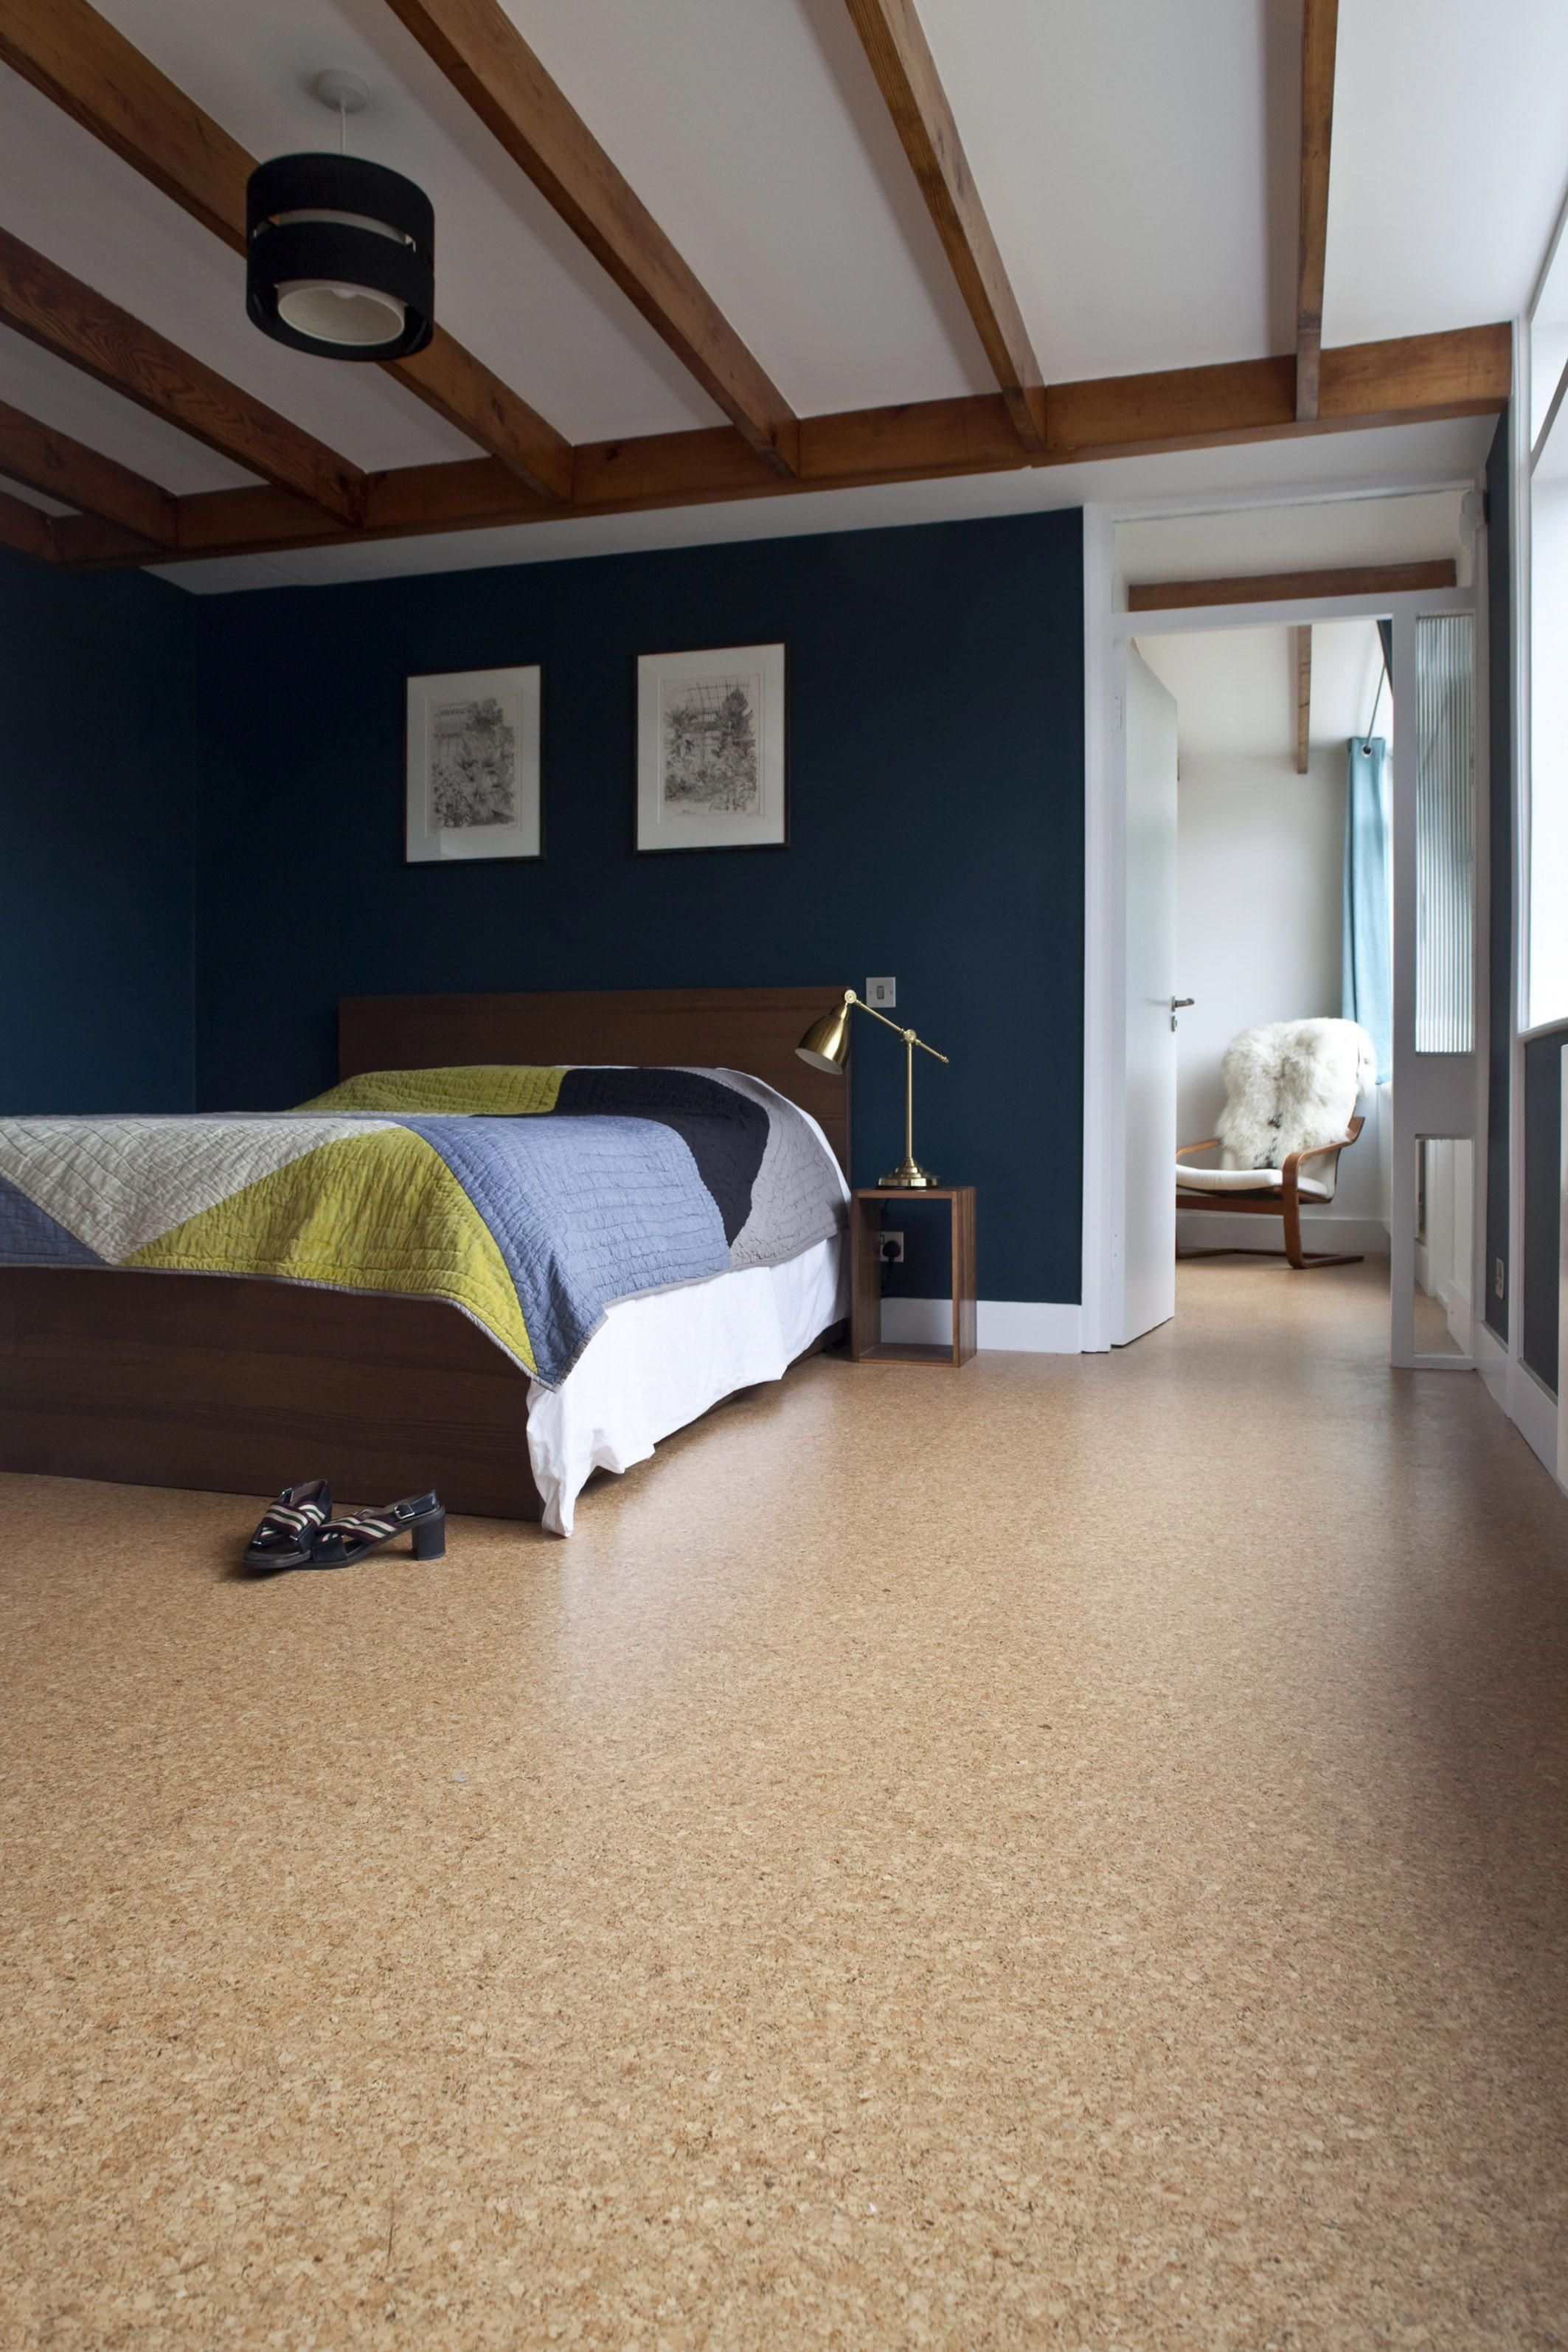 Bodenbeläge Im Schlafzimmer Hardwoodflooringkitchen Flooring Wall And Tiles In 2019 Cork